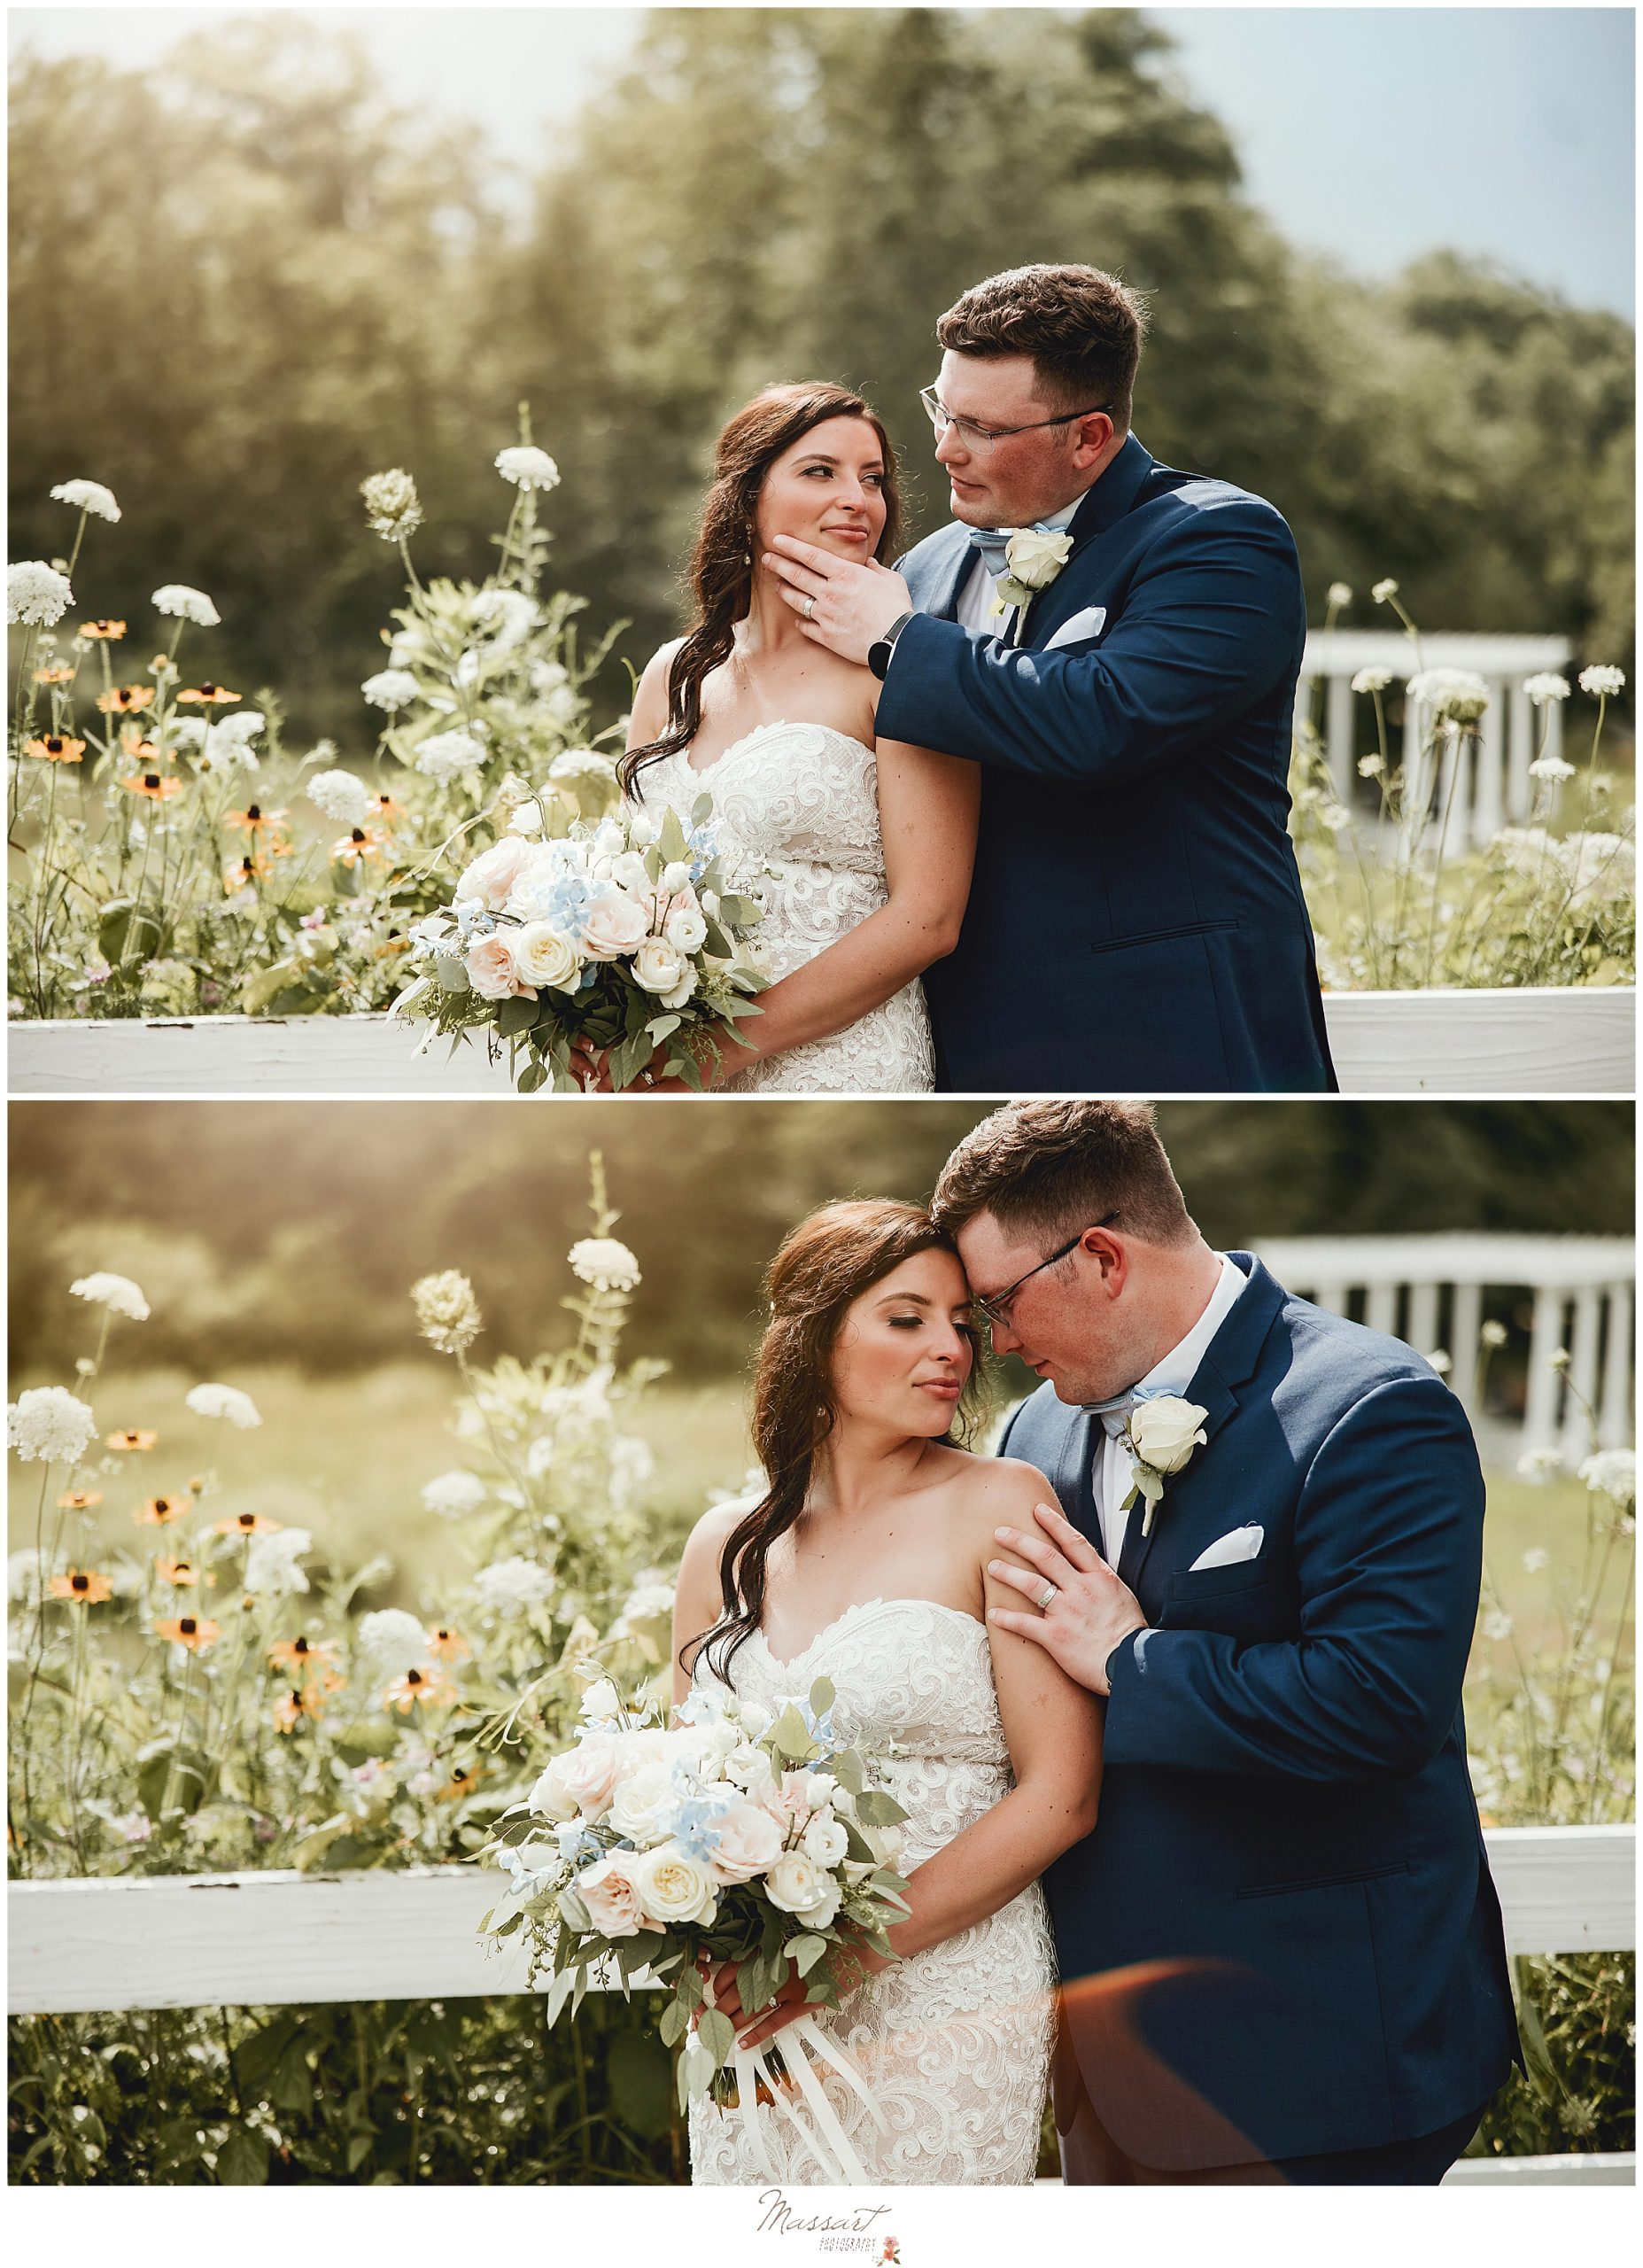 Couple poses in the garden at Five Bridge Inn so Massart Photography can take their pictures